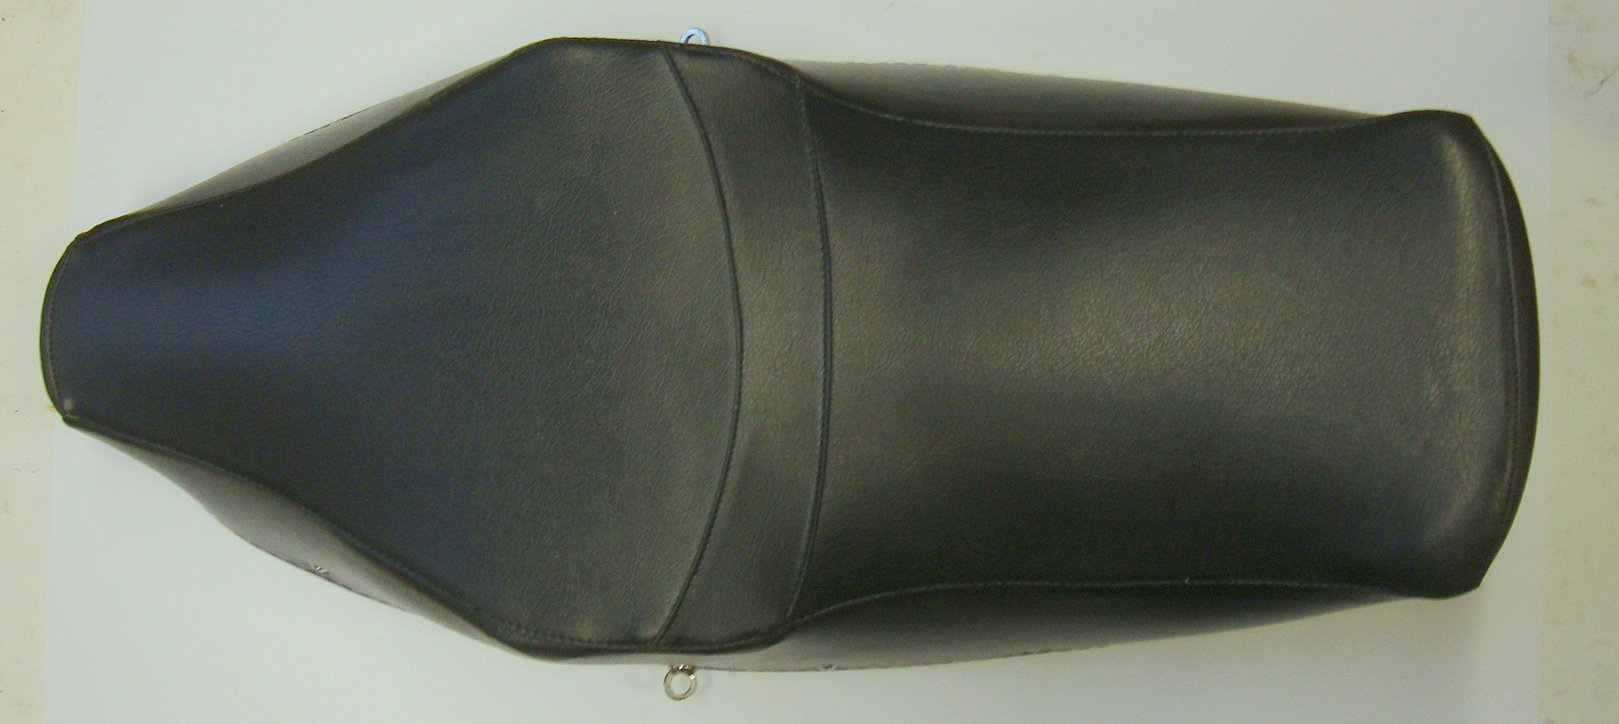 Dual seat cover, Vespa GS 150 VS1T